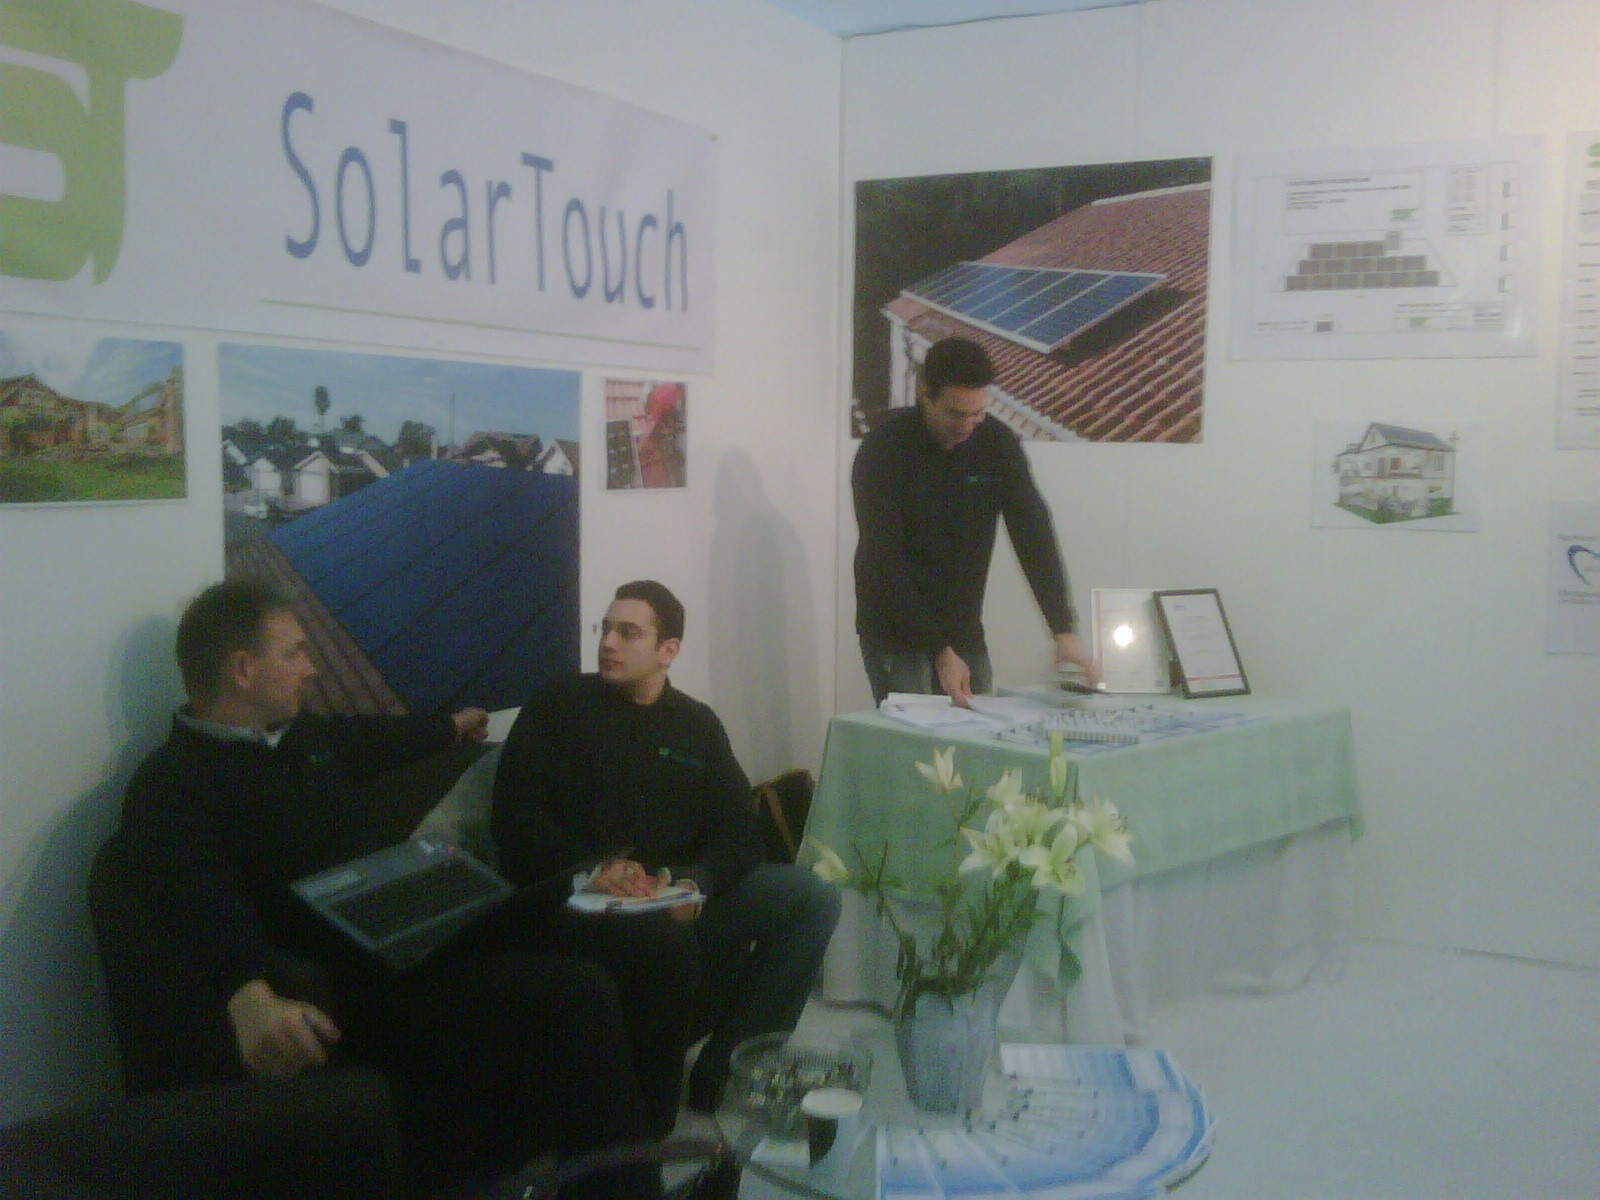 Managing Director Gunther Nacke of Convers Energie with SolarTouch partners at the London Ideal Home Show